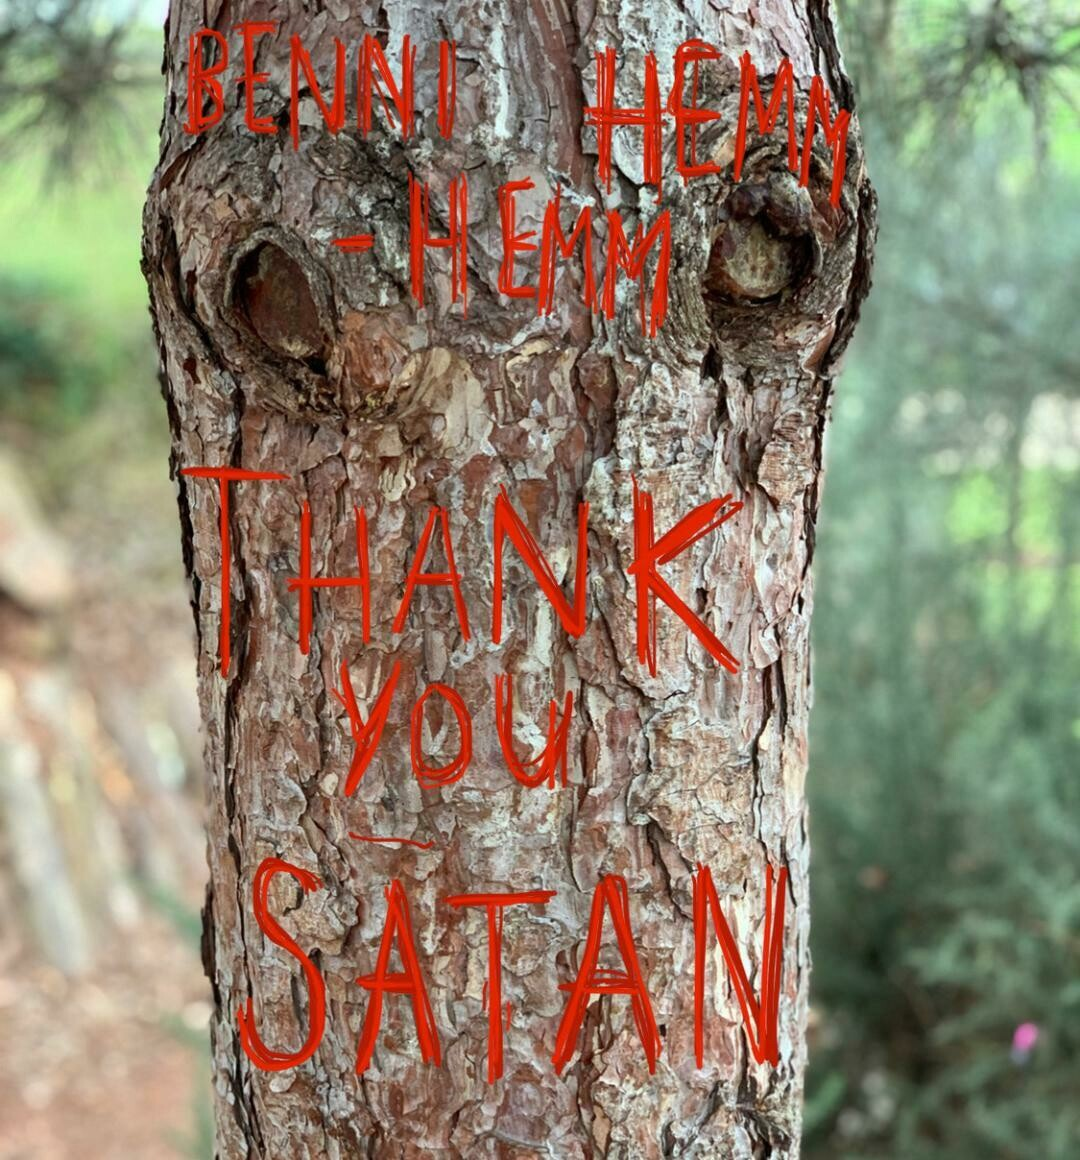 Benni Hemm Hemm - Thank You Satan LP